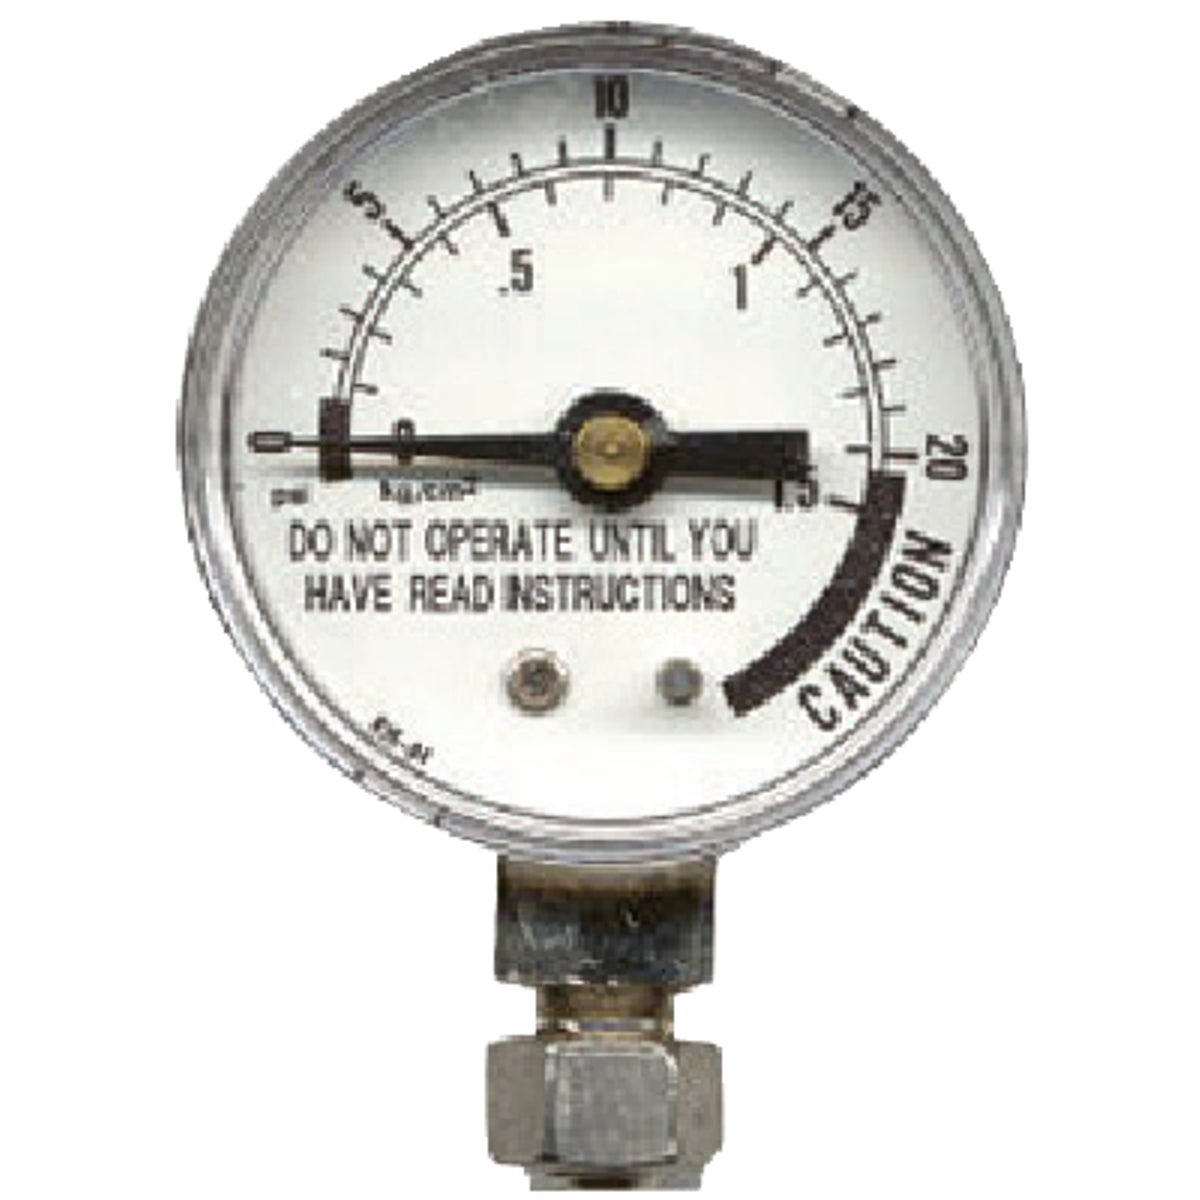 PRESSURE CANNER GAUGE - 85772 by National Presto